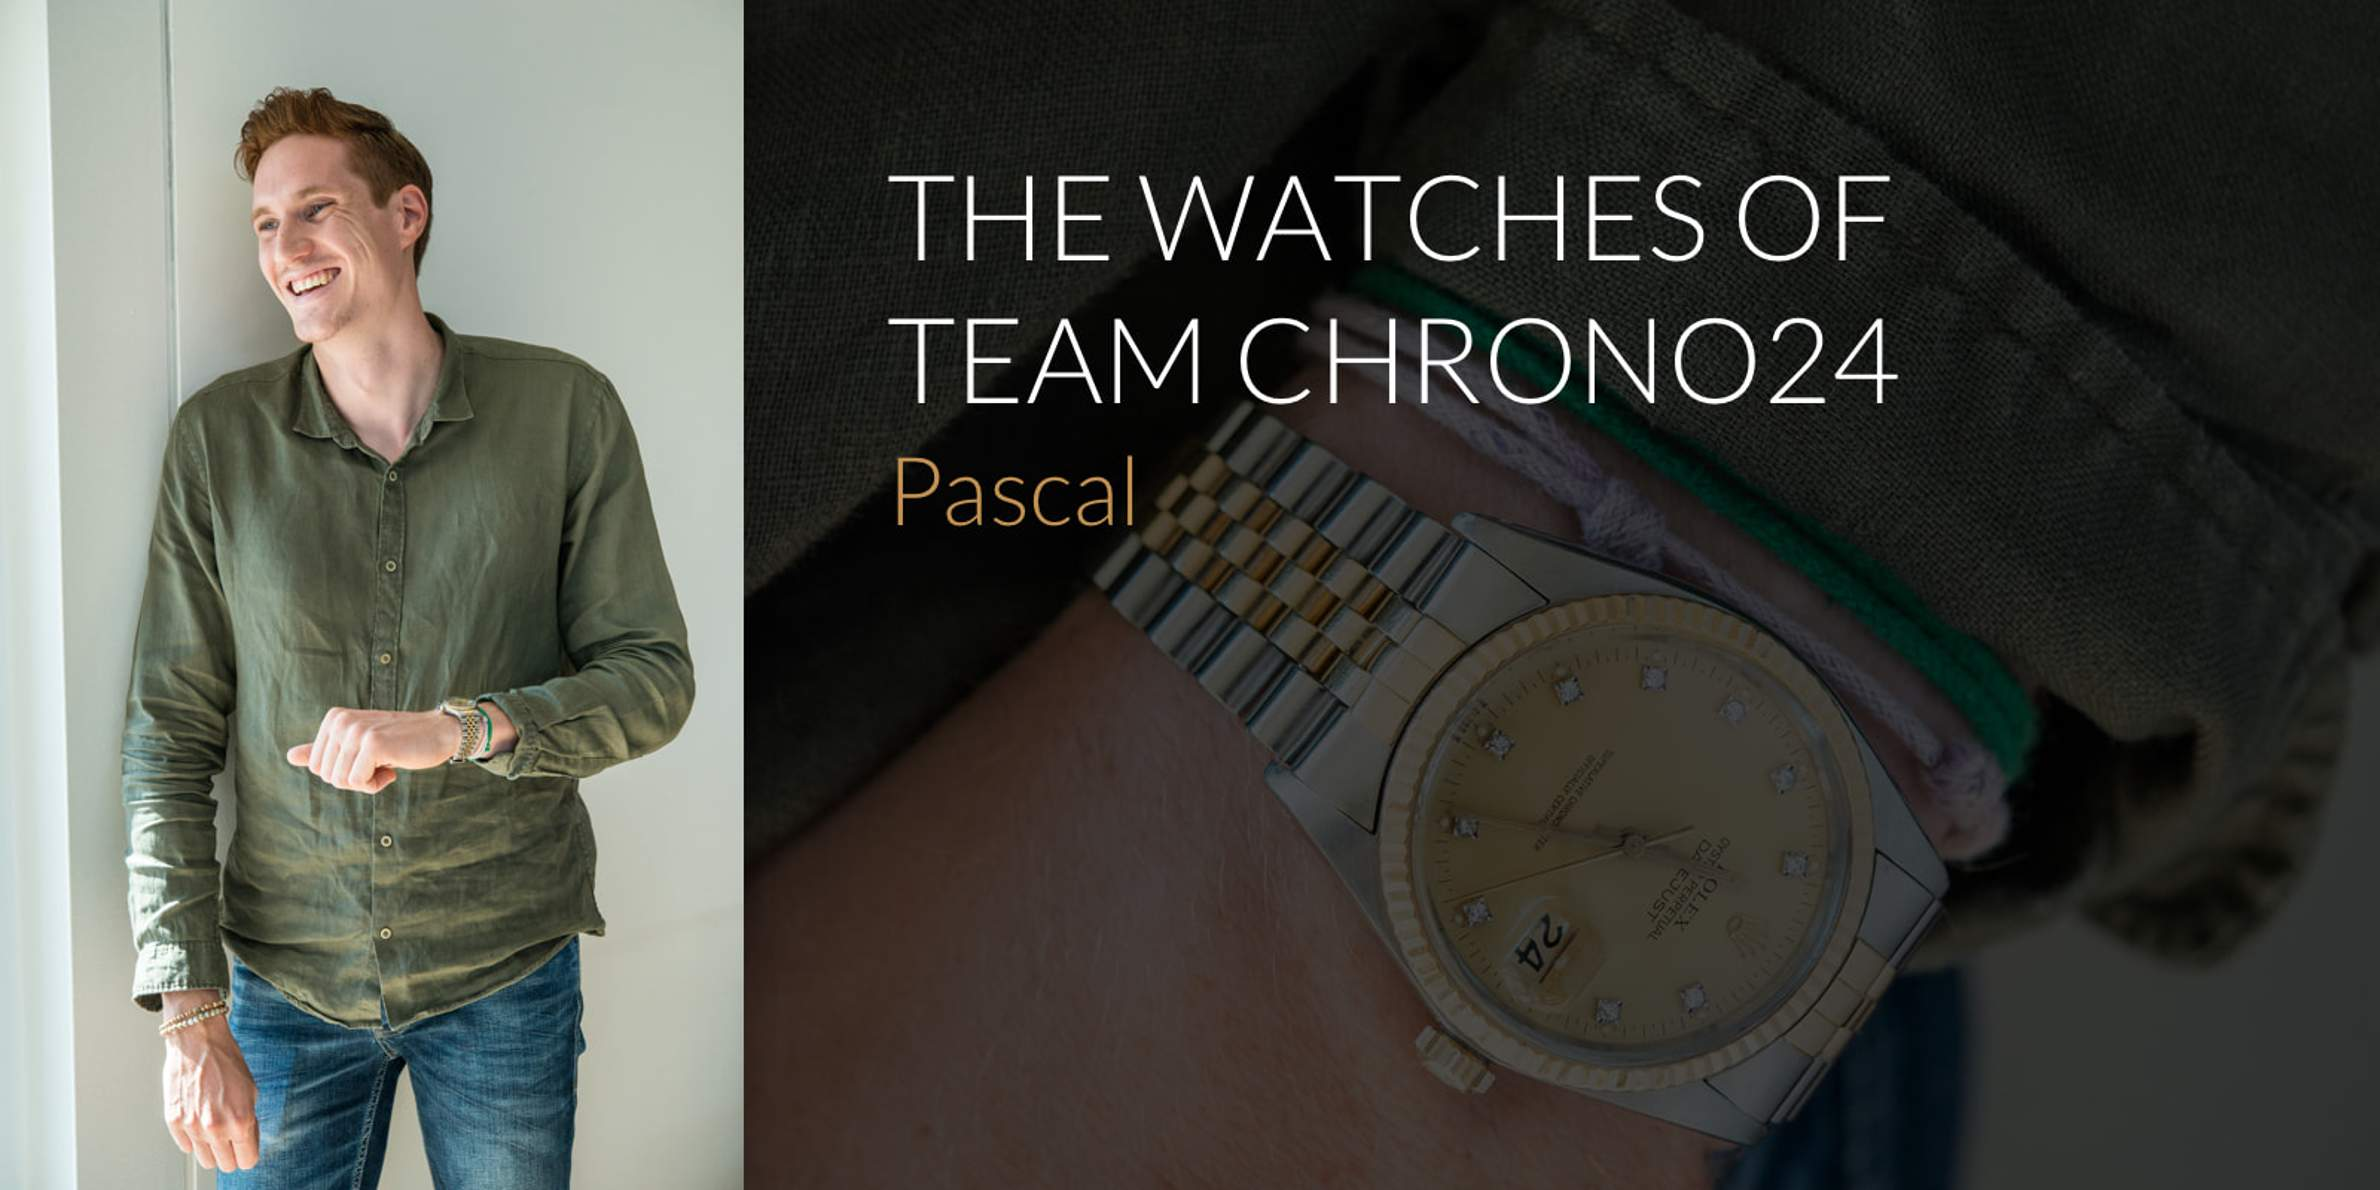 The Watches of Team Chrono24: Pascal